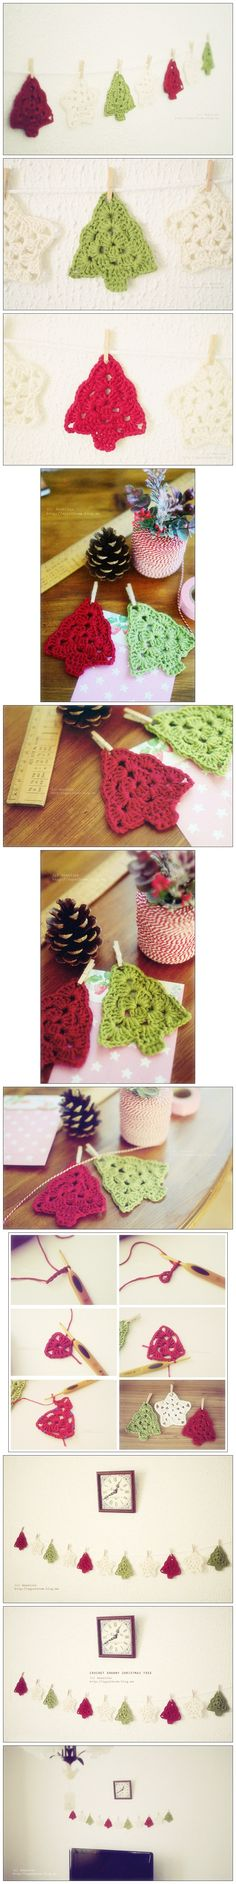 How to make crochet Christmas tree banner decoration | Welcome Craft